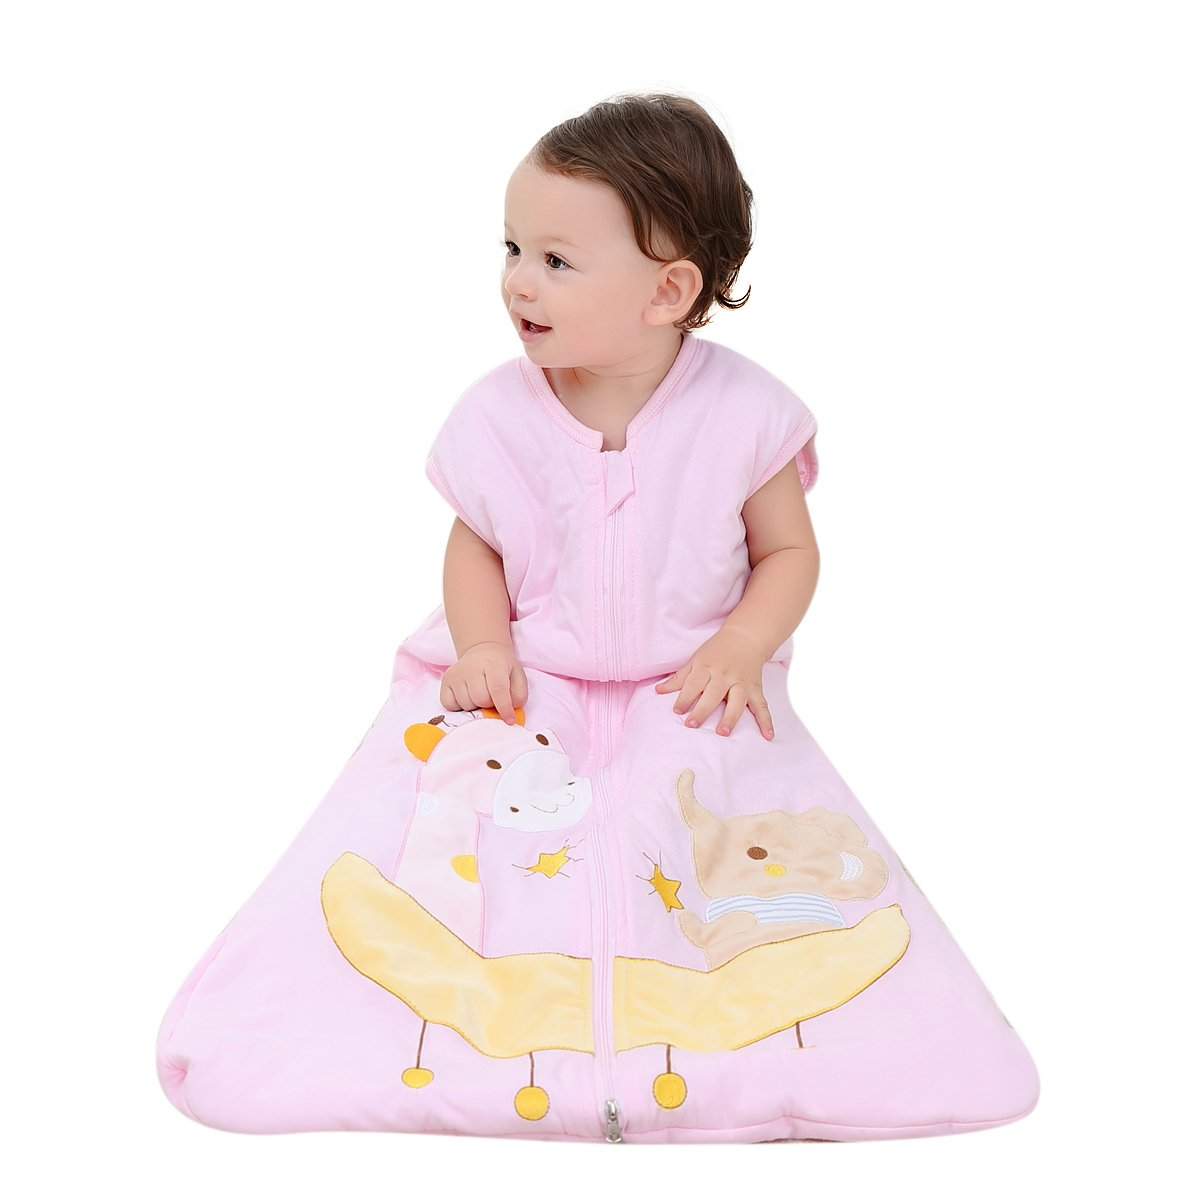 9925e5e70e Details about JDleather Baby Wearable Blanket Sleep Sack 100% Cotton  Sleeping Bag 2.5 Tog